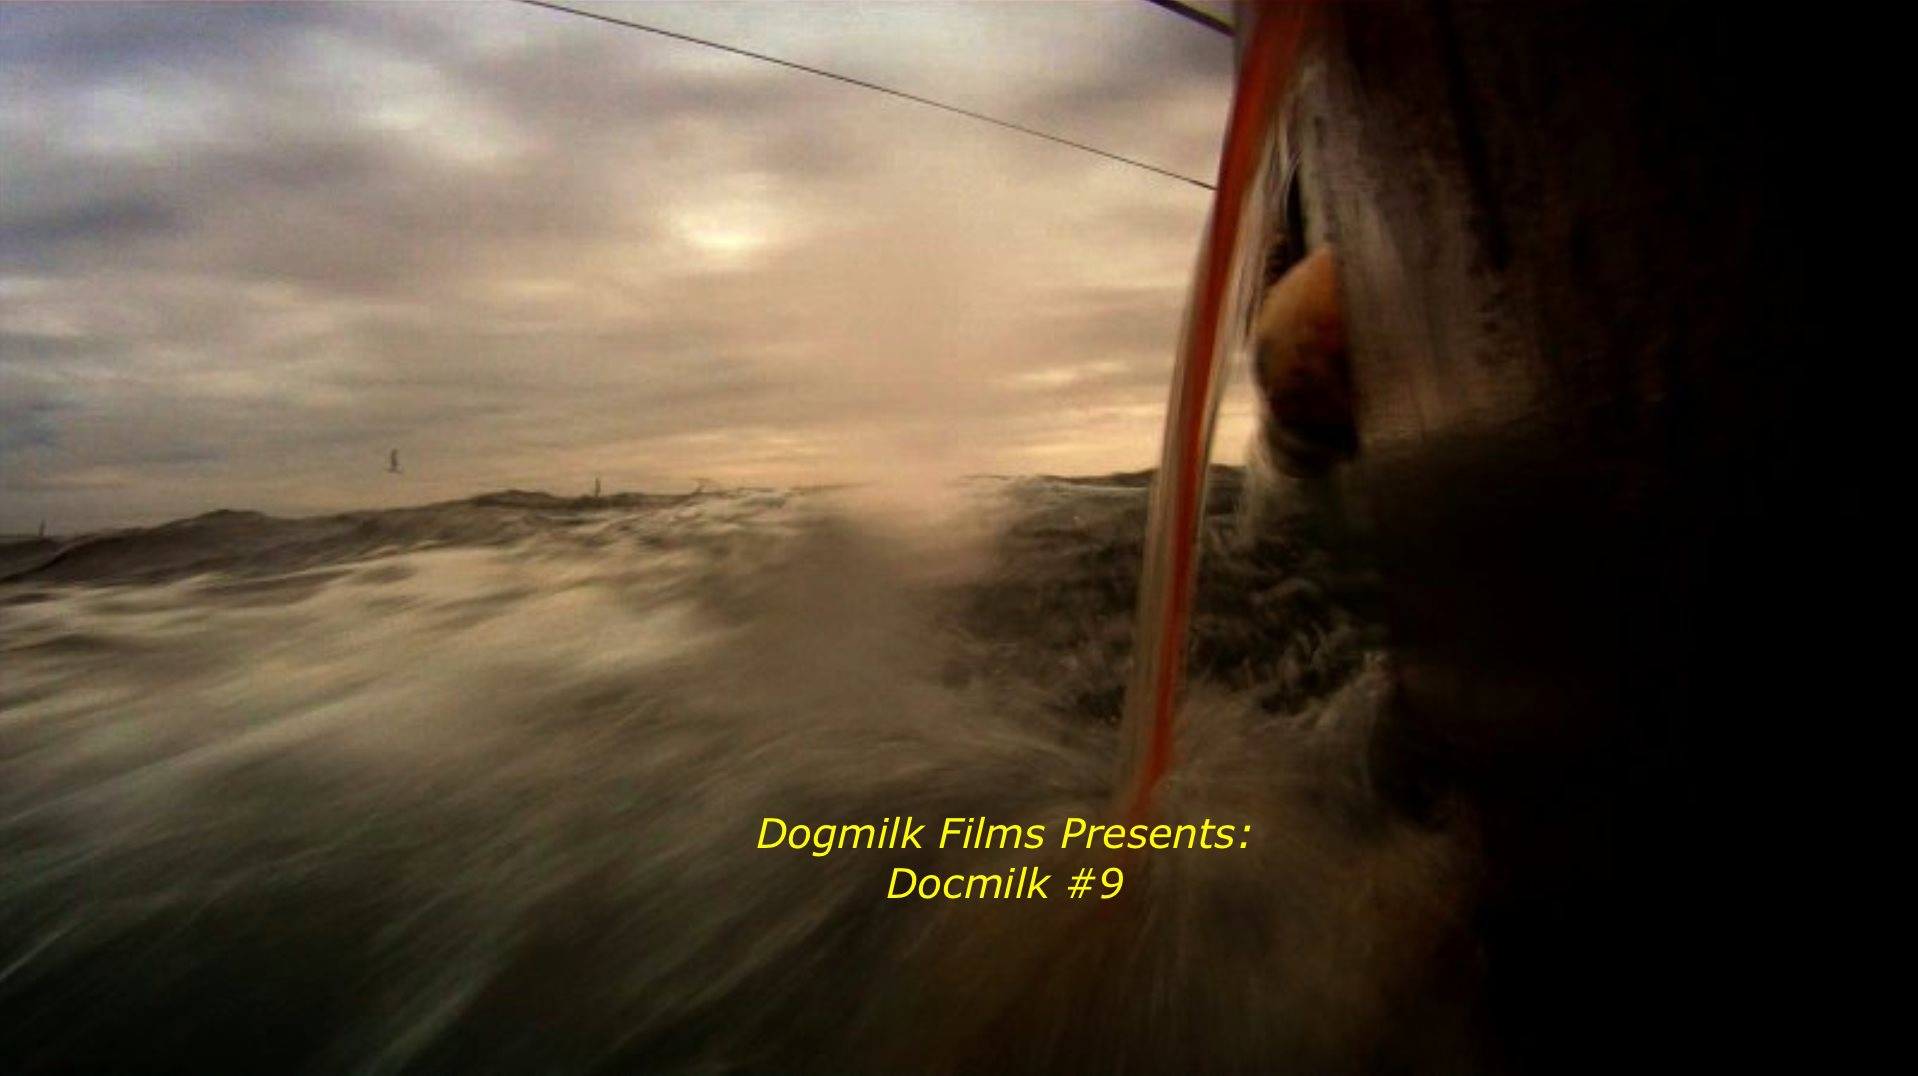 Dogmilk Presents Docmilk #9: Leviathan